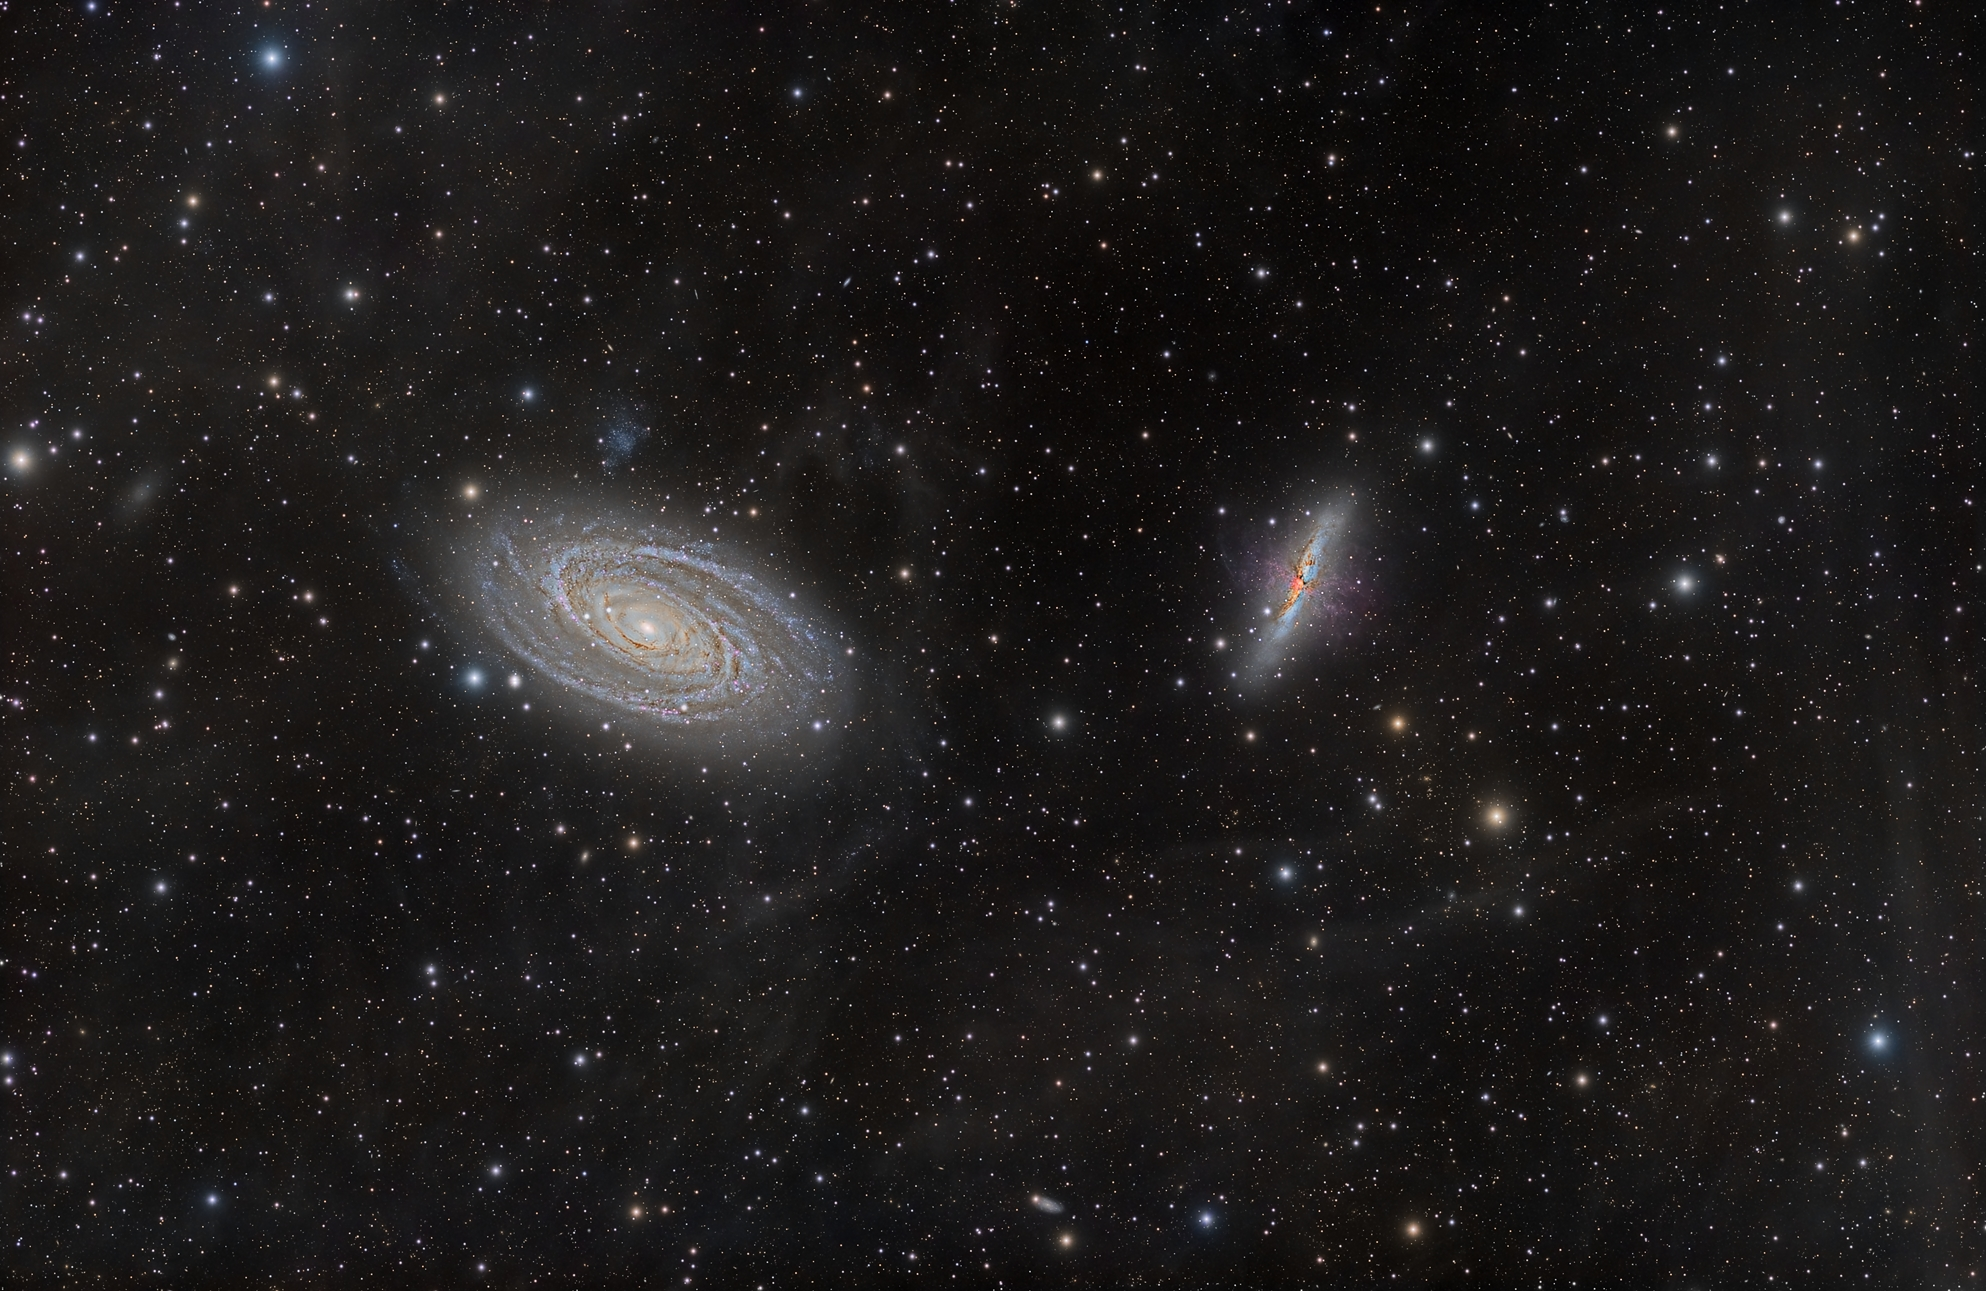 M81_M82_IFN_2011_widefield.jpg -          texto_bright    Object:M81, M82 & IFN   Date:From February 2010 to March 2011   Observingsite: FNO (Fosca Nit Observatory, Àger)   Telescope: TakahashiTOA-150  @ f/7.3 on EM-400 mount   Camera:SBIG STL-11000M  @ -20C   Filters: LRGB Astrodon   Totalexposure: More than 20 hours of accumulated exposure (all unbinned).     Guiding: Camera guide chip     Software:Guide & camera control: CCDSoft. Processing: PixInsight 1.6 Comment: